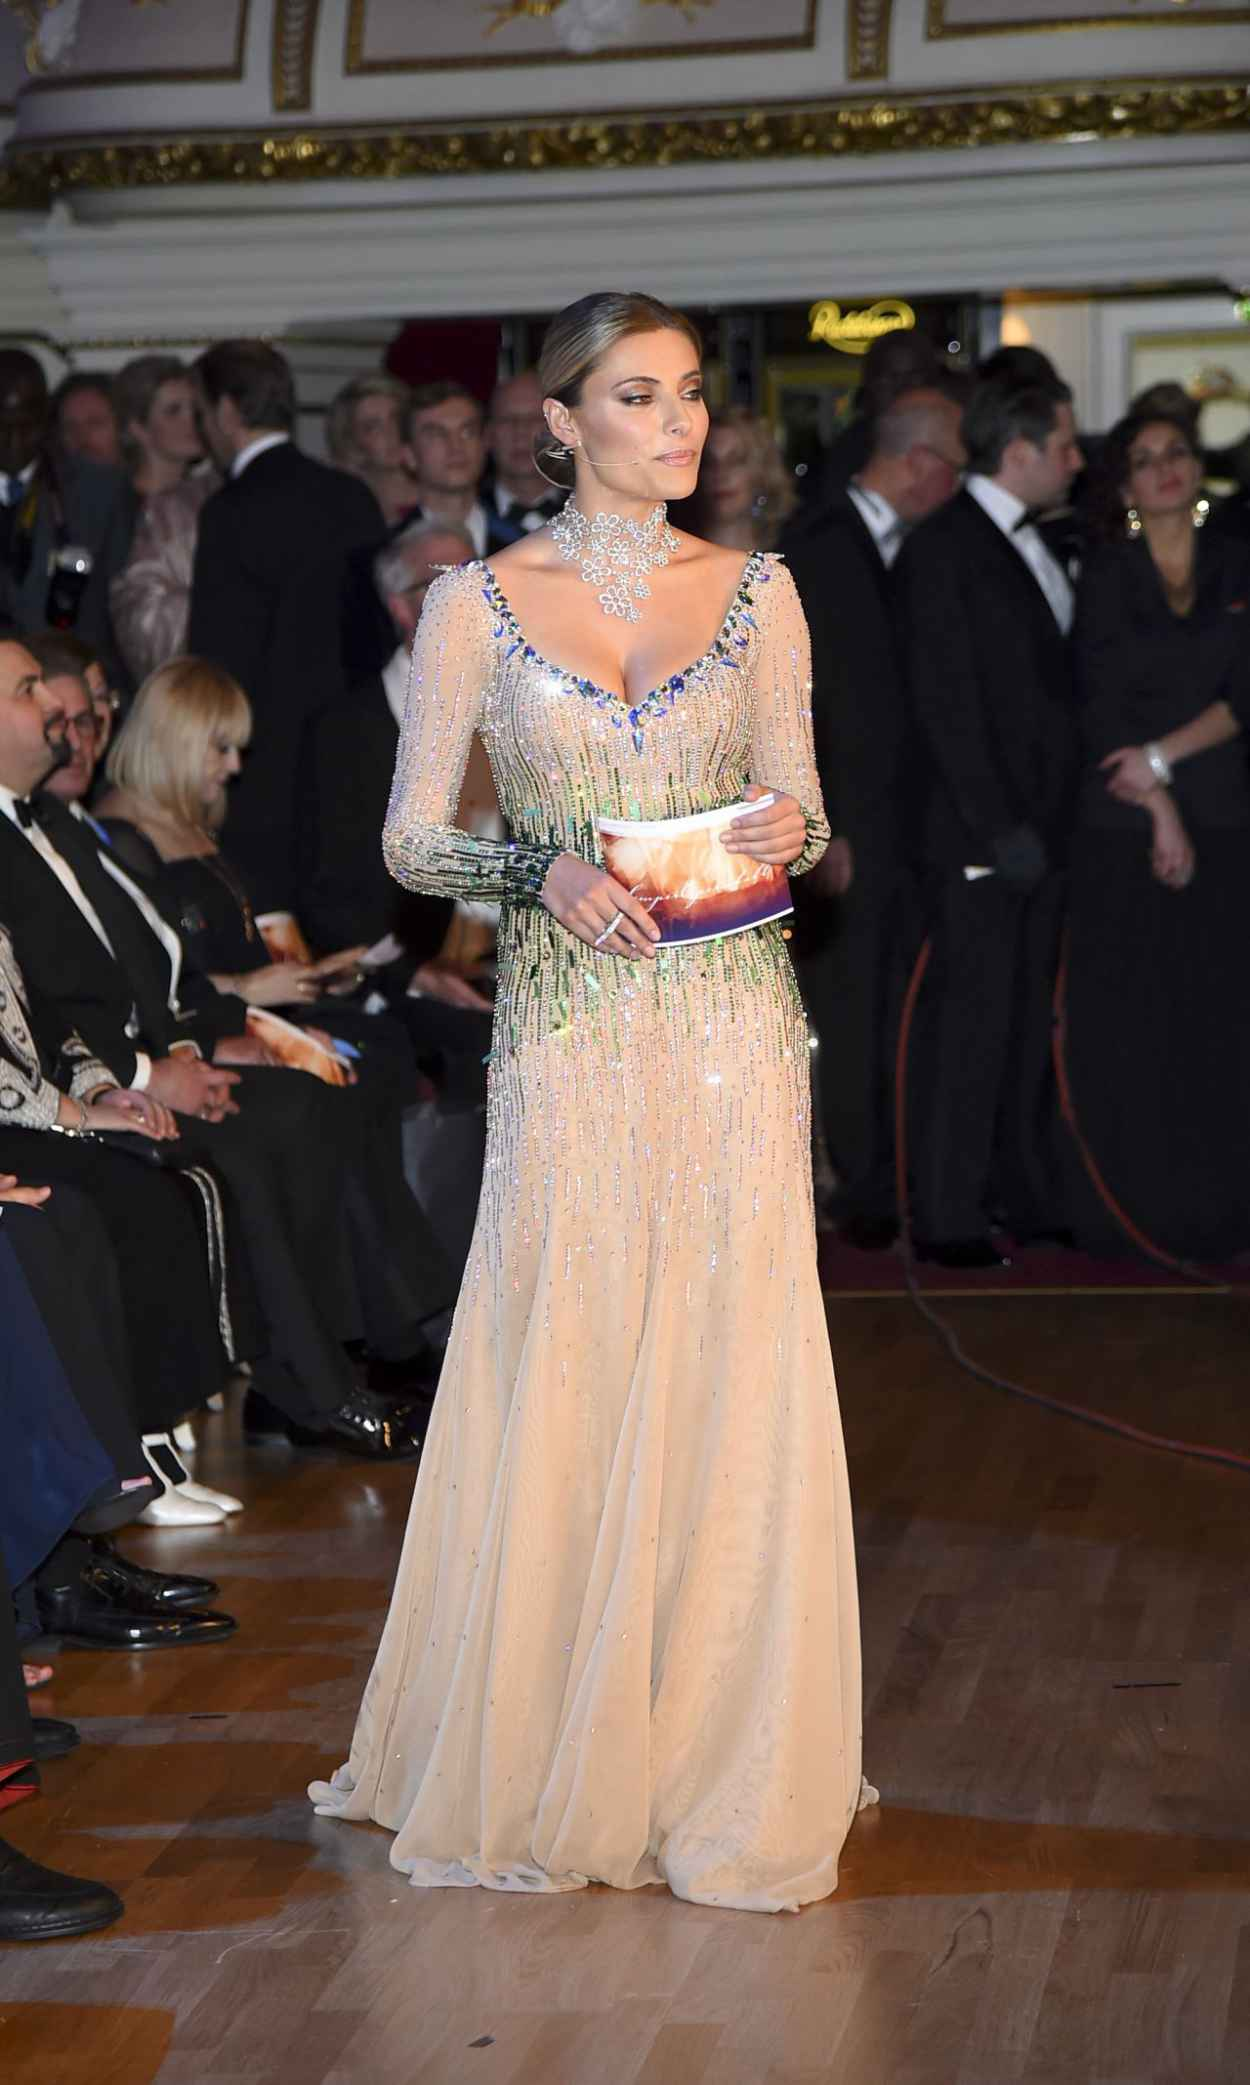 Sophia Thomalla - 10. SemperOpernball 2015 in Dresden-3